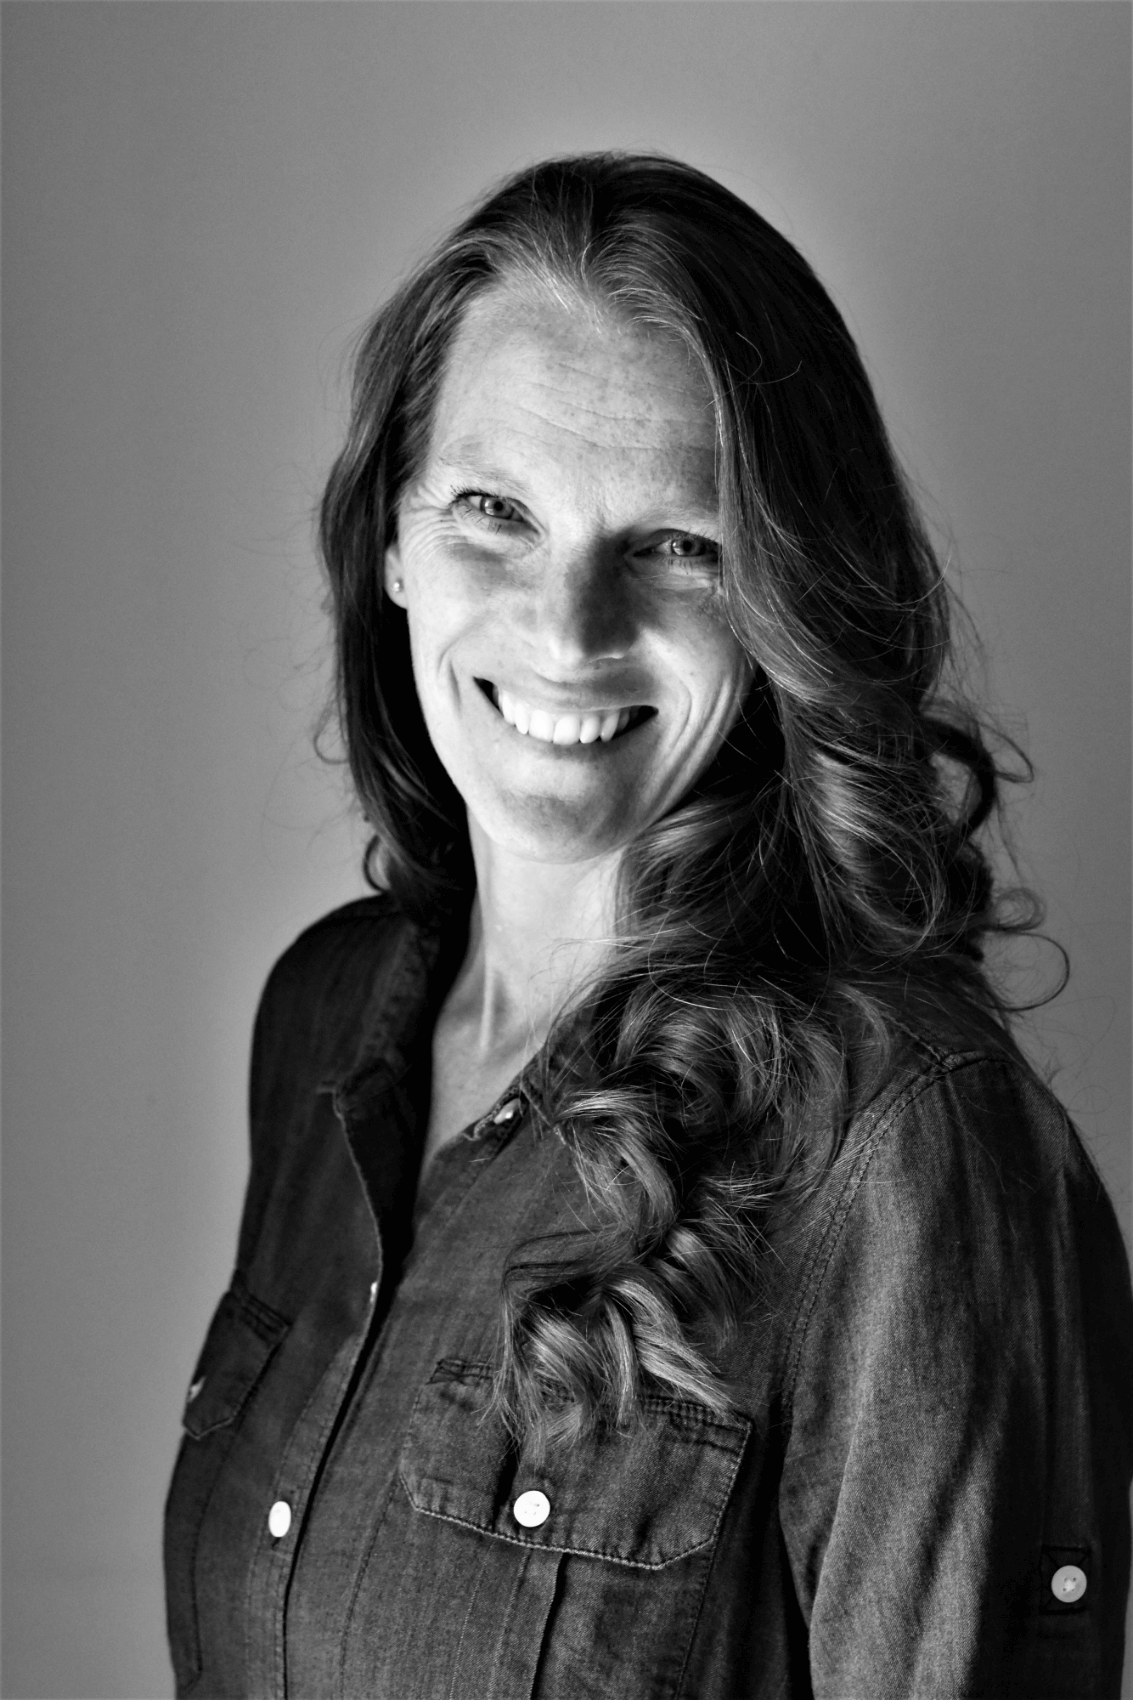 Black and white Image of Carol founder and ceo of talking crow coffee roasters